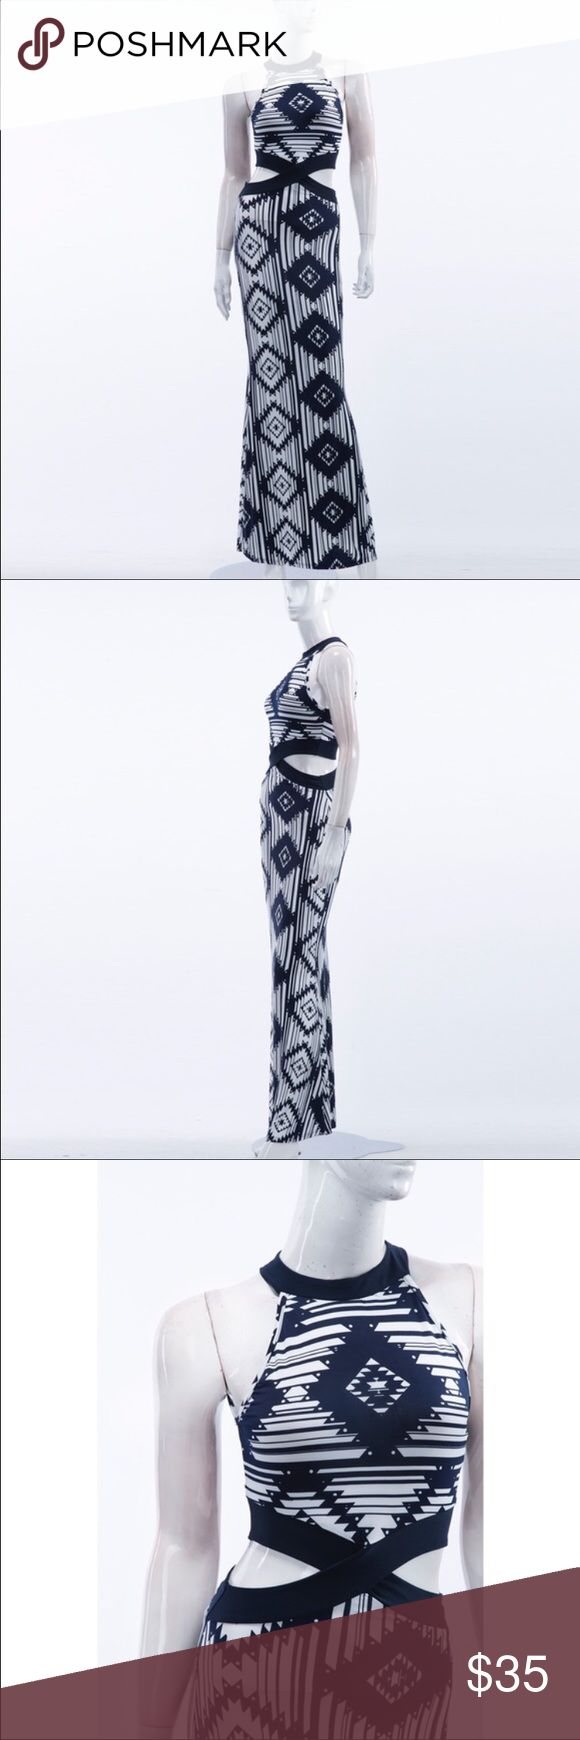 🎀coming soon🎀 Geo Aztec designed maxi dress. With a cut out waist. Beautiful and coming soon. 🎀BOUTIQUE ITEM🎀 Dresses Maxi